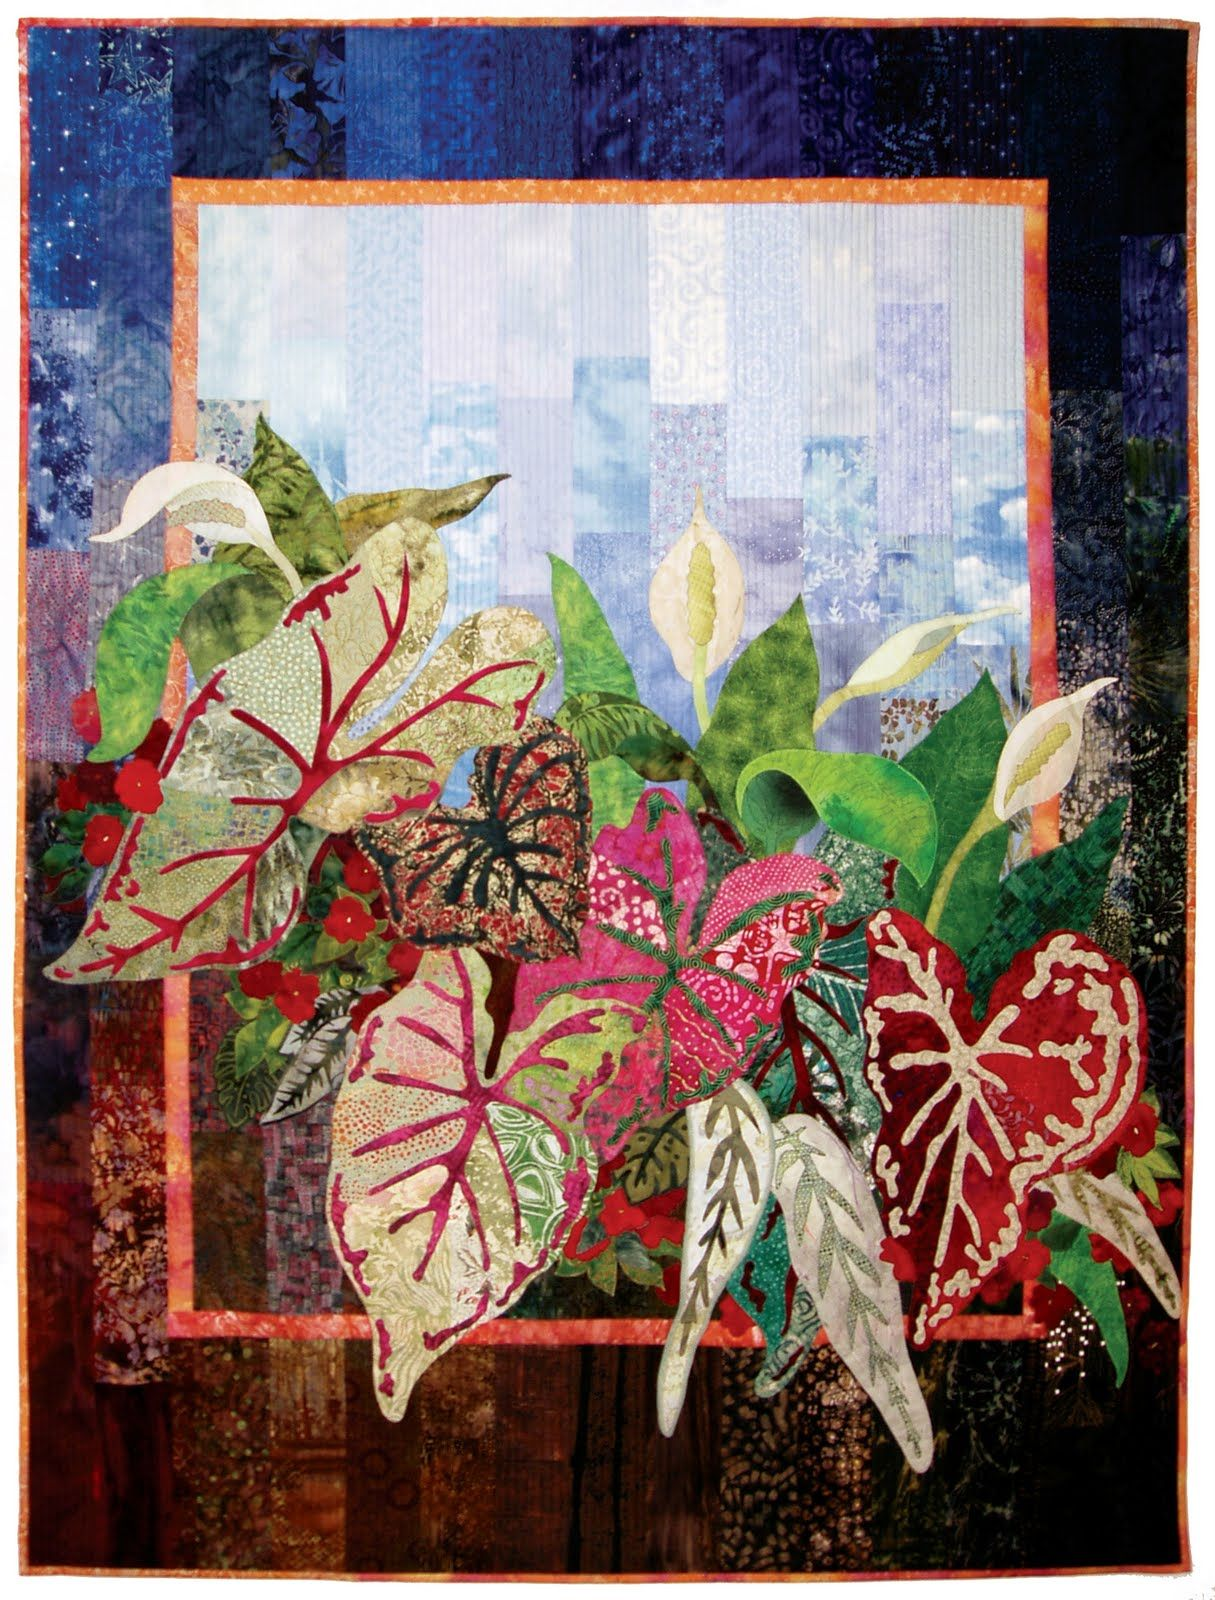 Garden+of+dreams%2C+by+Vyvyan+Emery%2C+at+rosewoodquilts.blogspot.com.jpg (1215×1600)